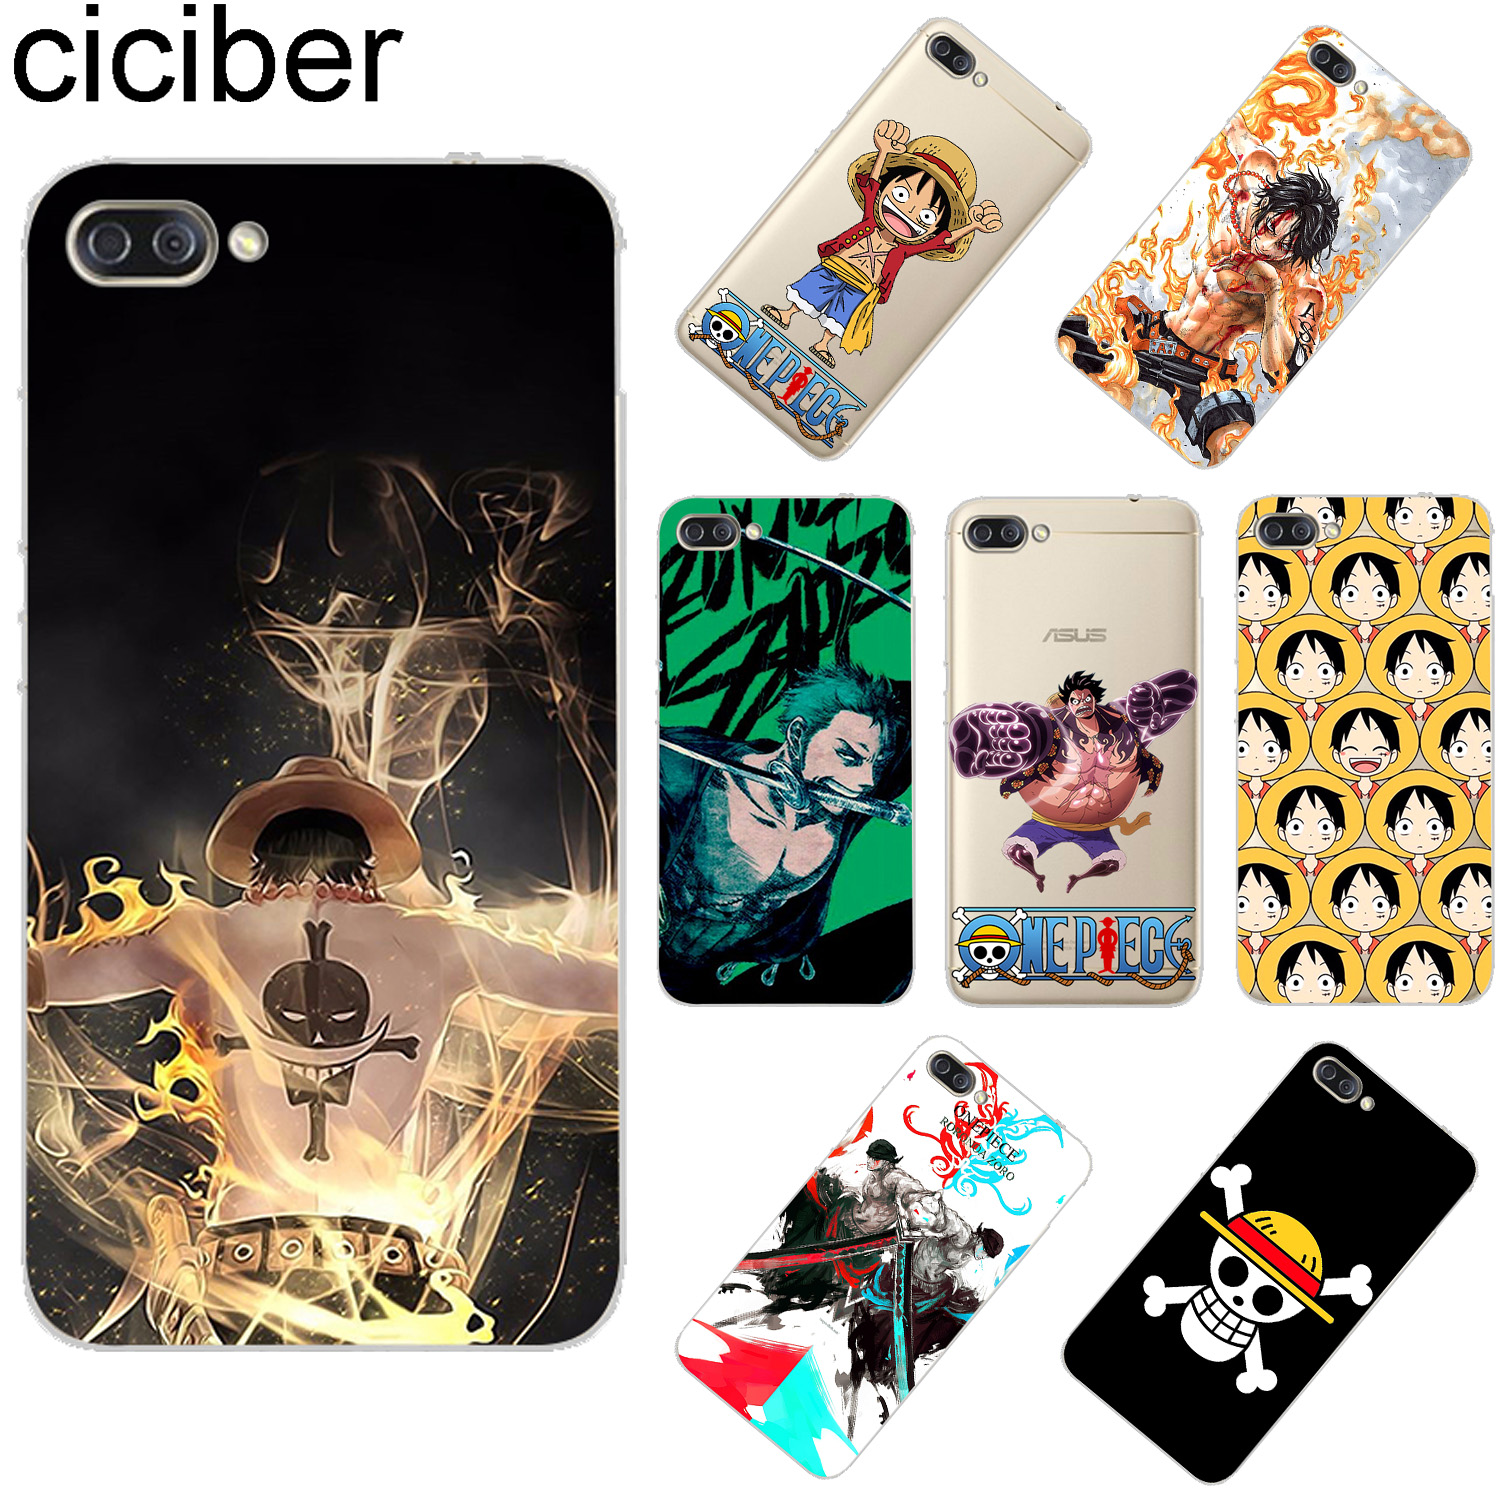 ciciber For <font><b>ASUS</b></font> <font><b>ZenFone</b></font> 5 <font><b>4</b></font> 3 3S Max Plus Laser Deluxe <font><b>Selfie</b></font> Pro Z Q Lite Soft TPU Japanese Anime Luffy One Piece <font><b>Phone</b></font> <font><b>Cases</b></font> image